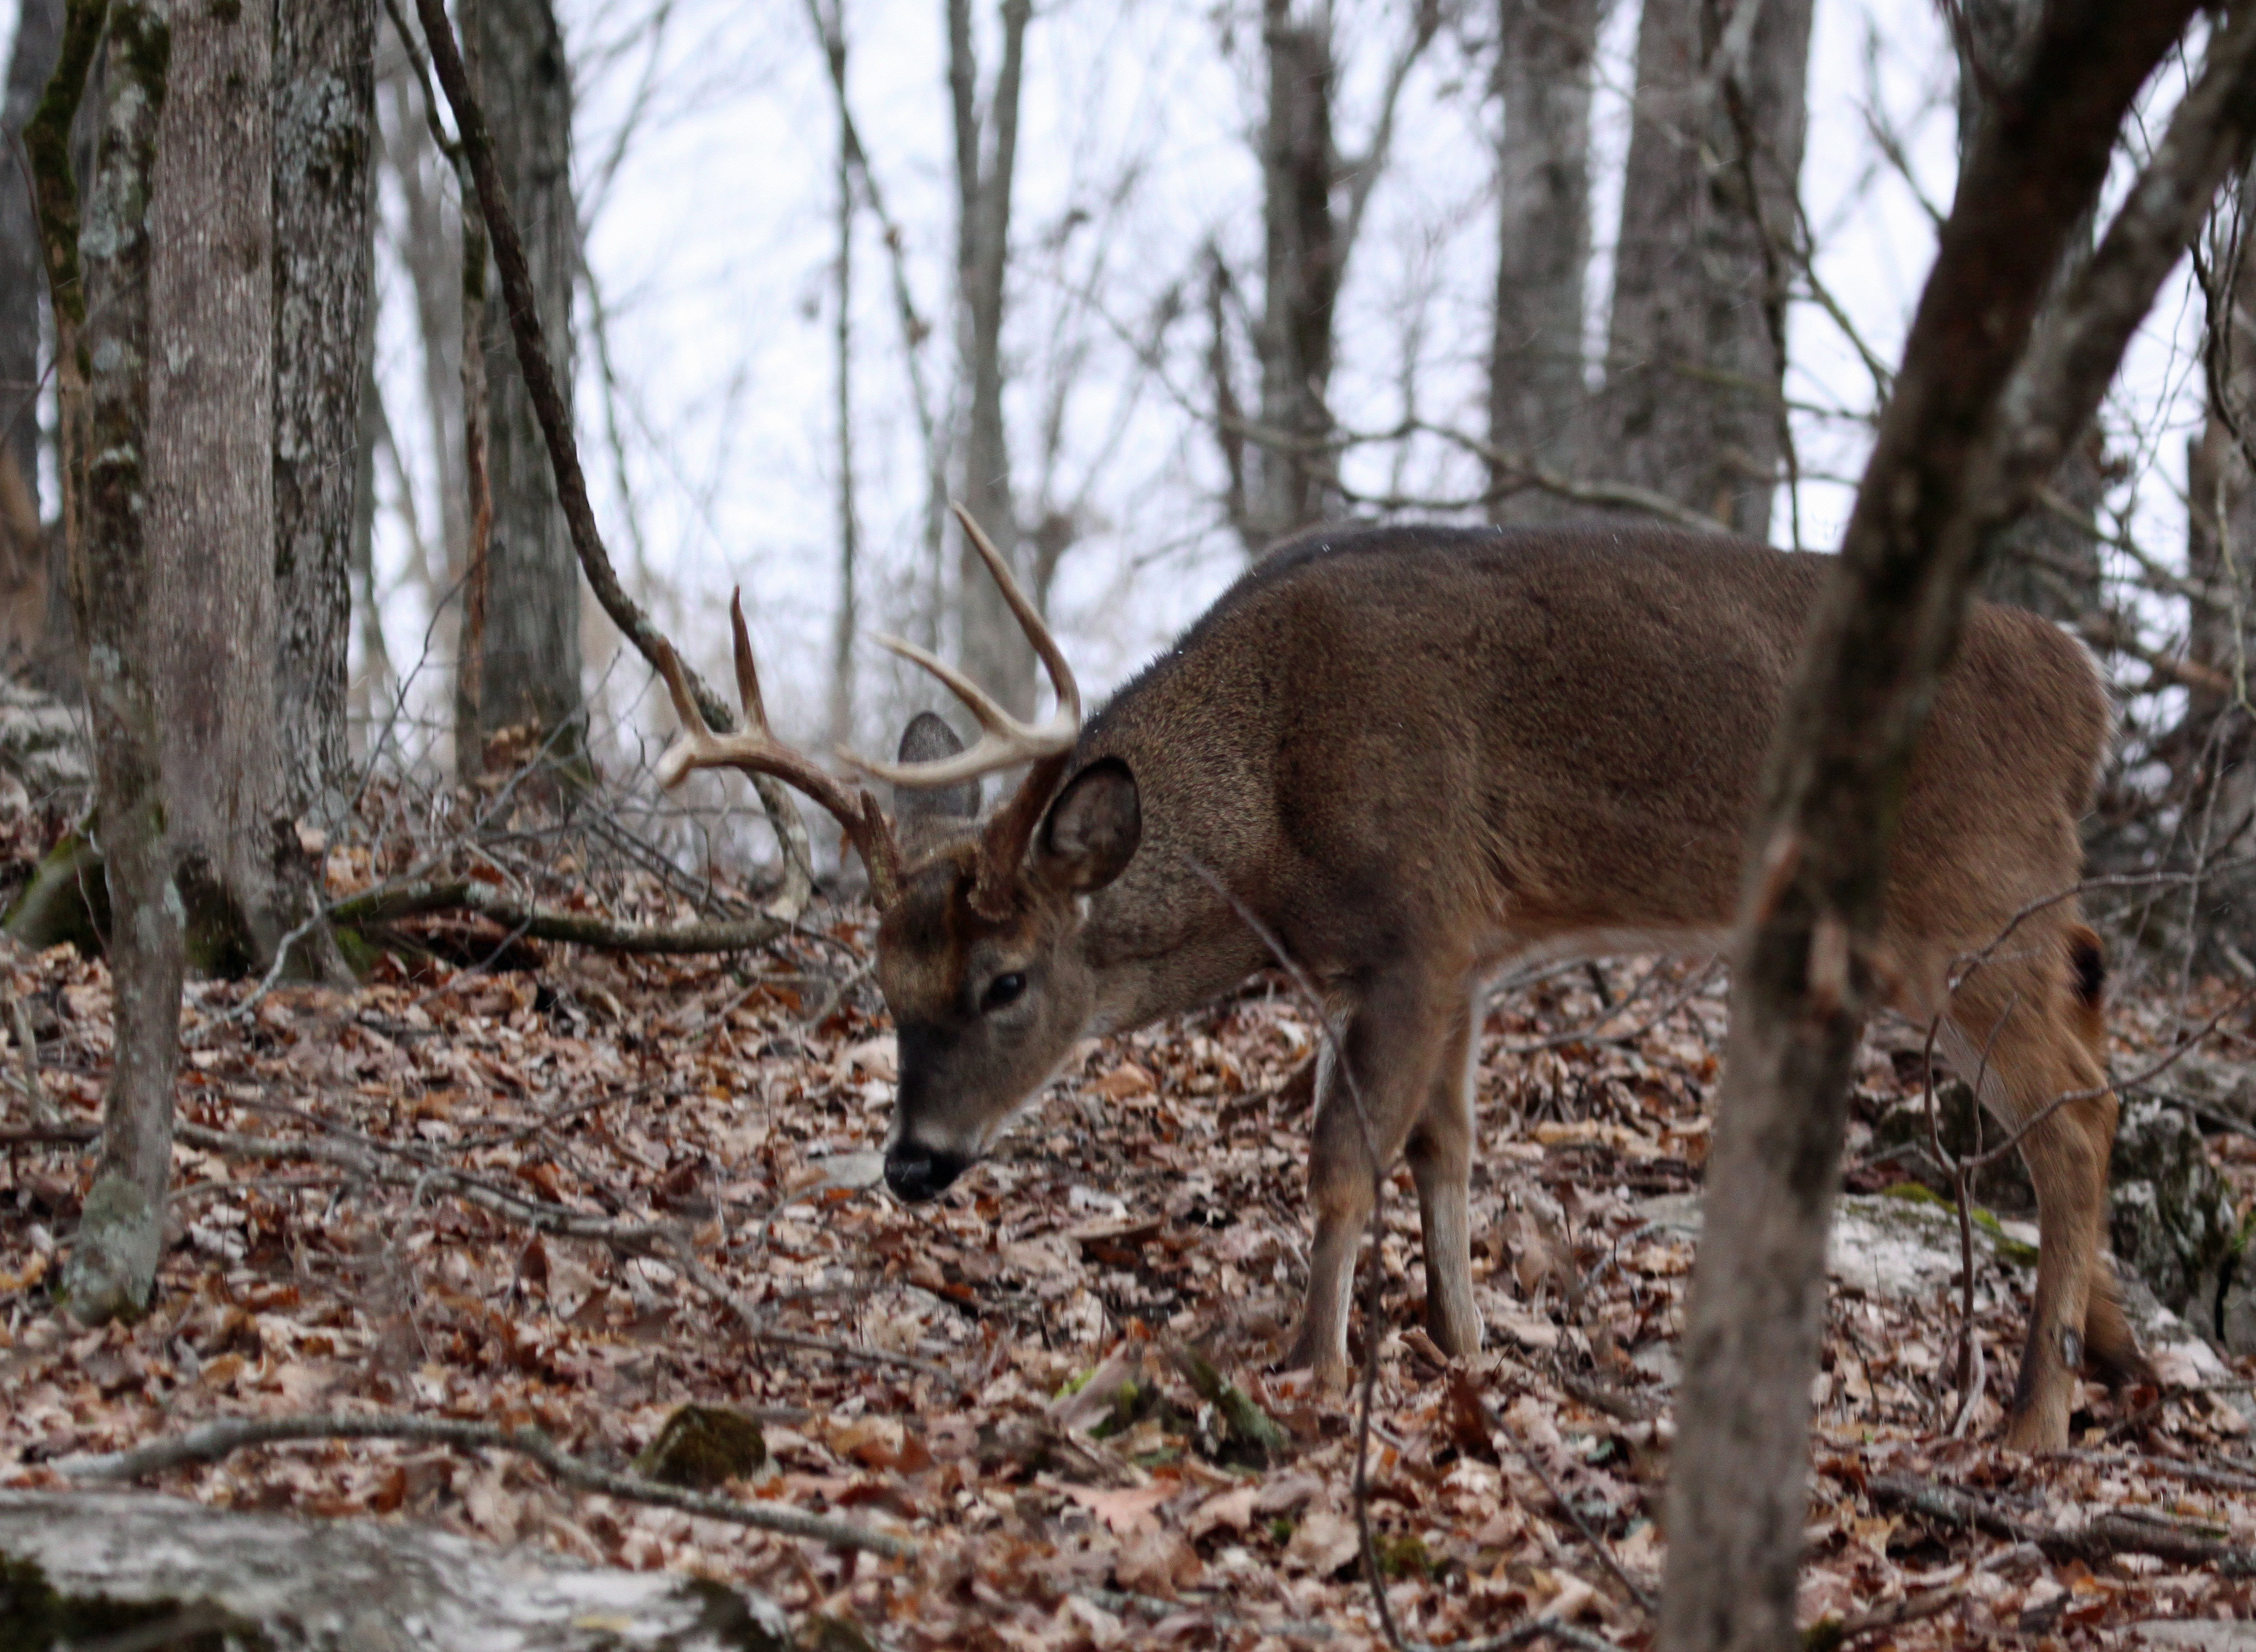 Find some remaining acorns to have success deer hunting late in the season.